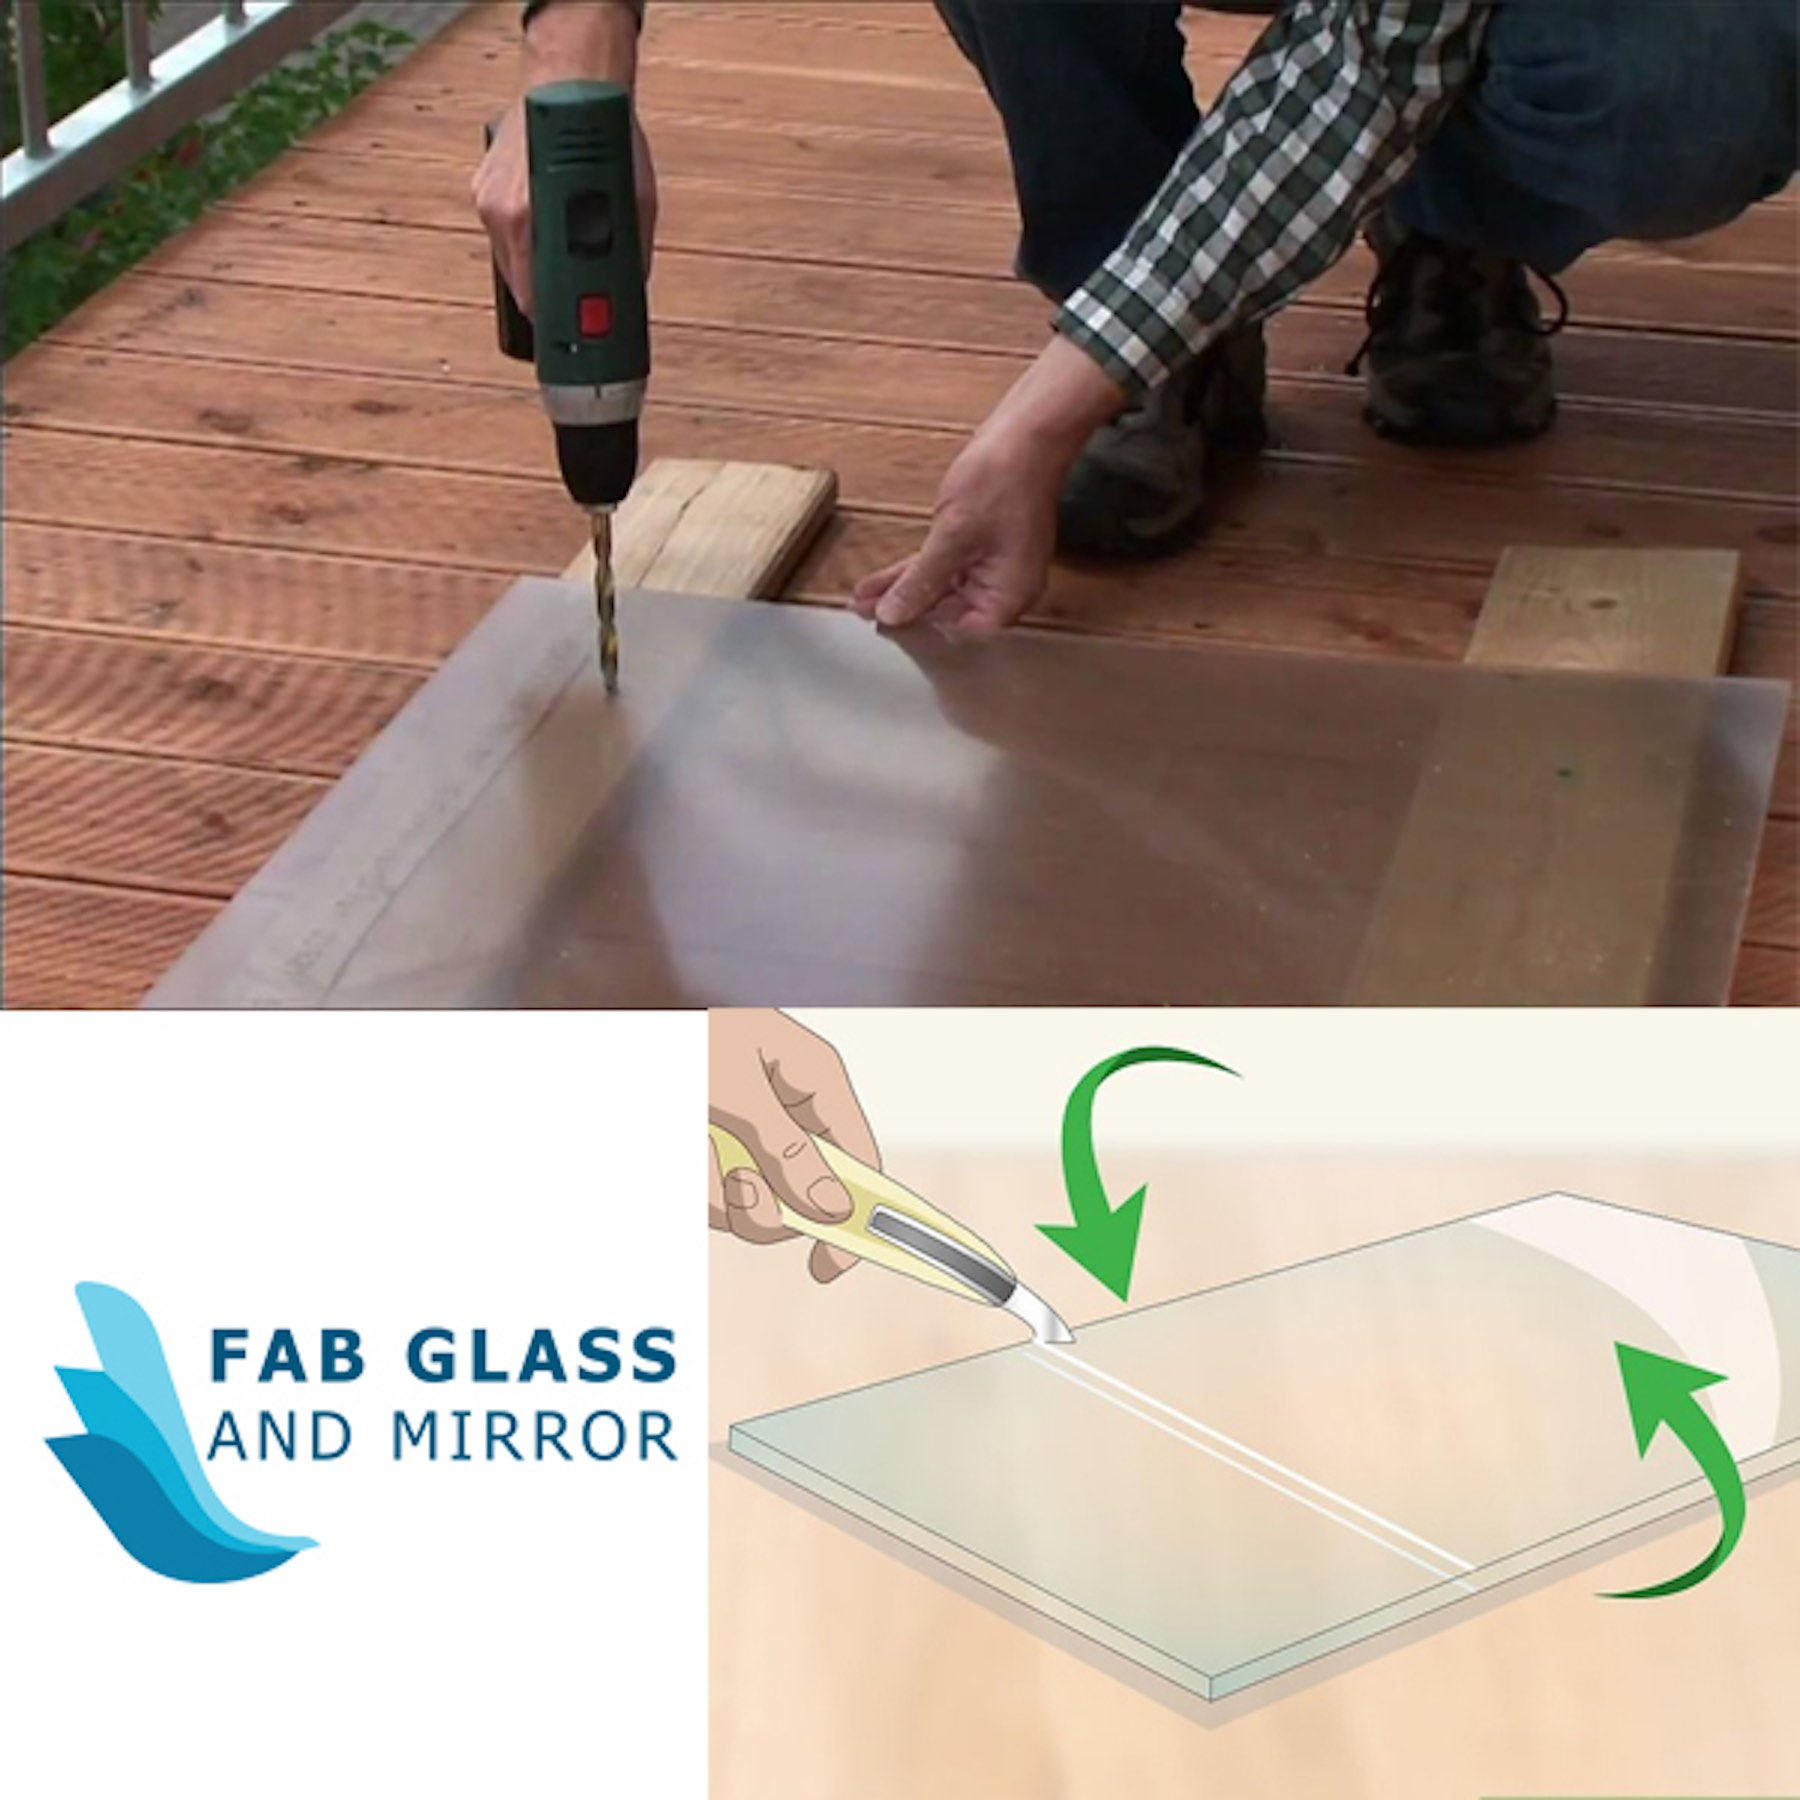 What Should Keep in Mind While Cutting Clear Plexiglas Sheet by Yourself?